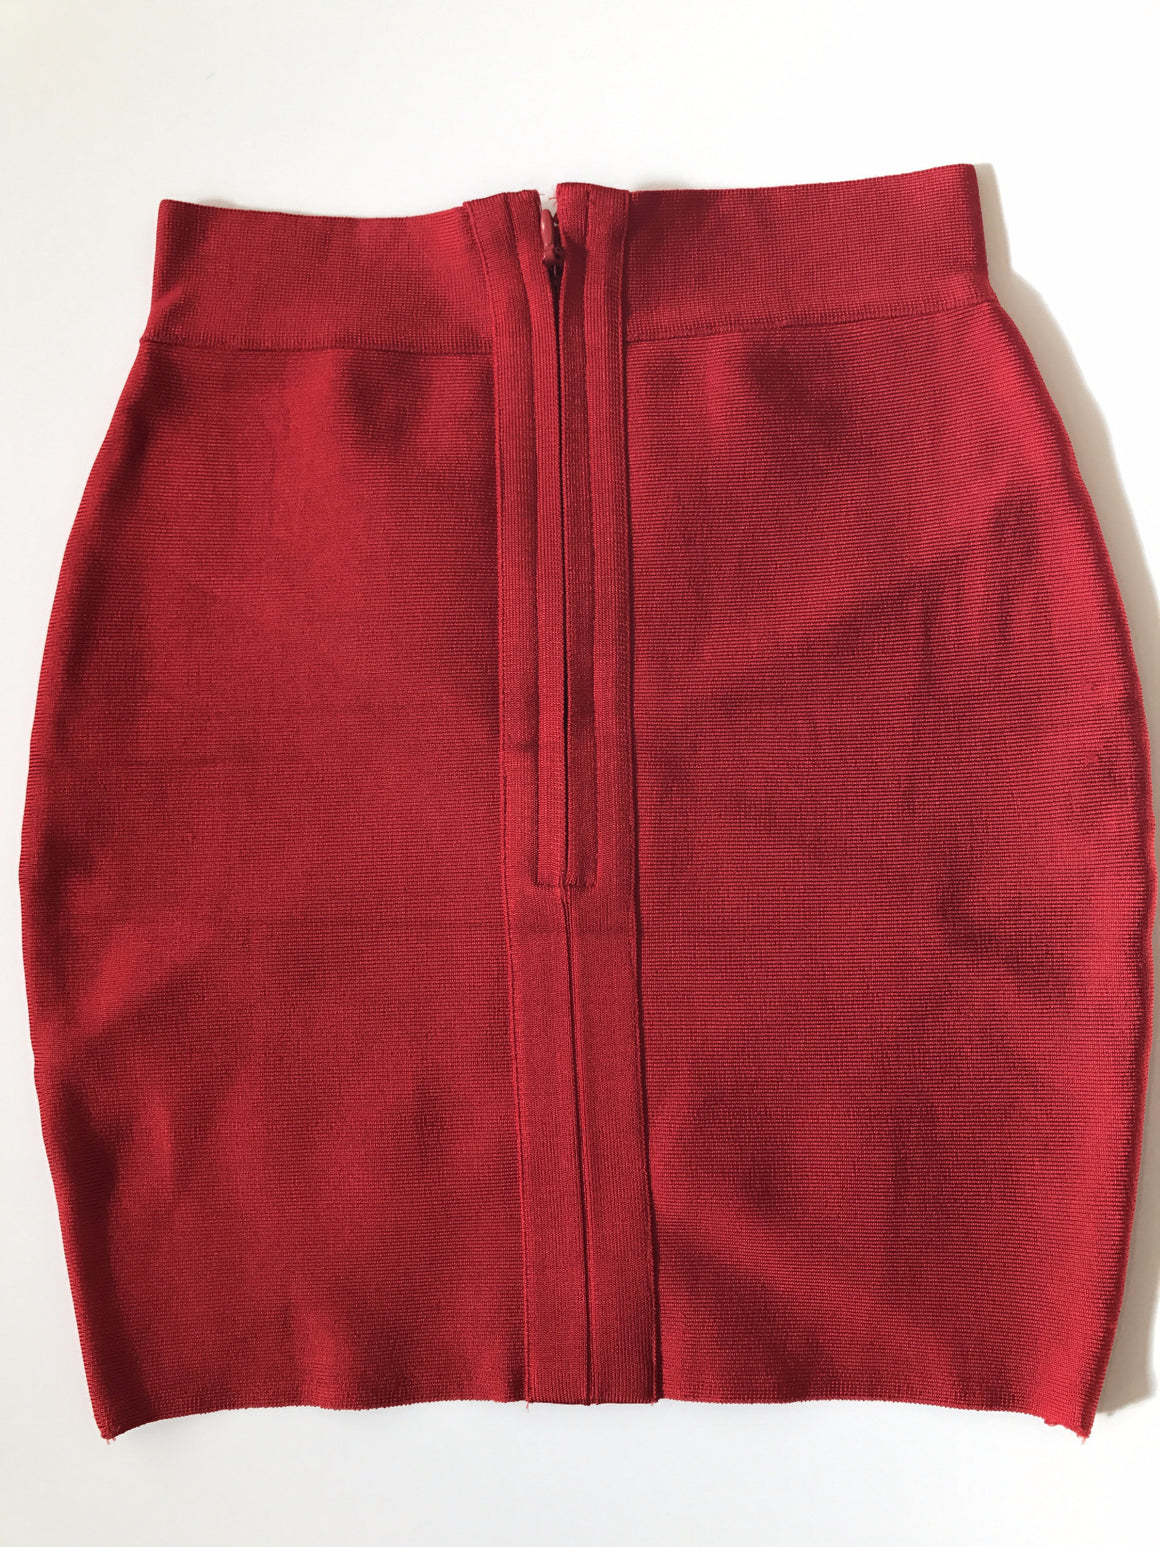 Bandage V Skirt - Red